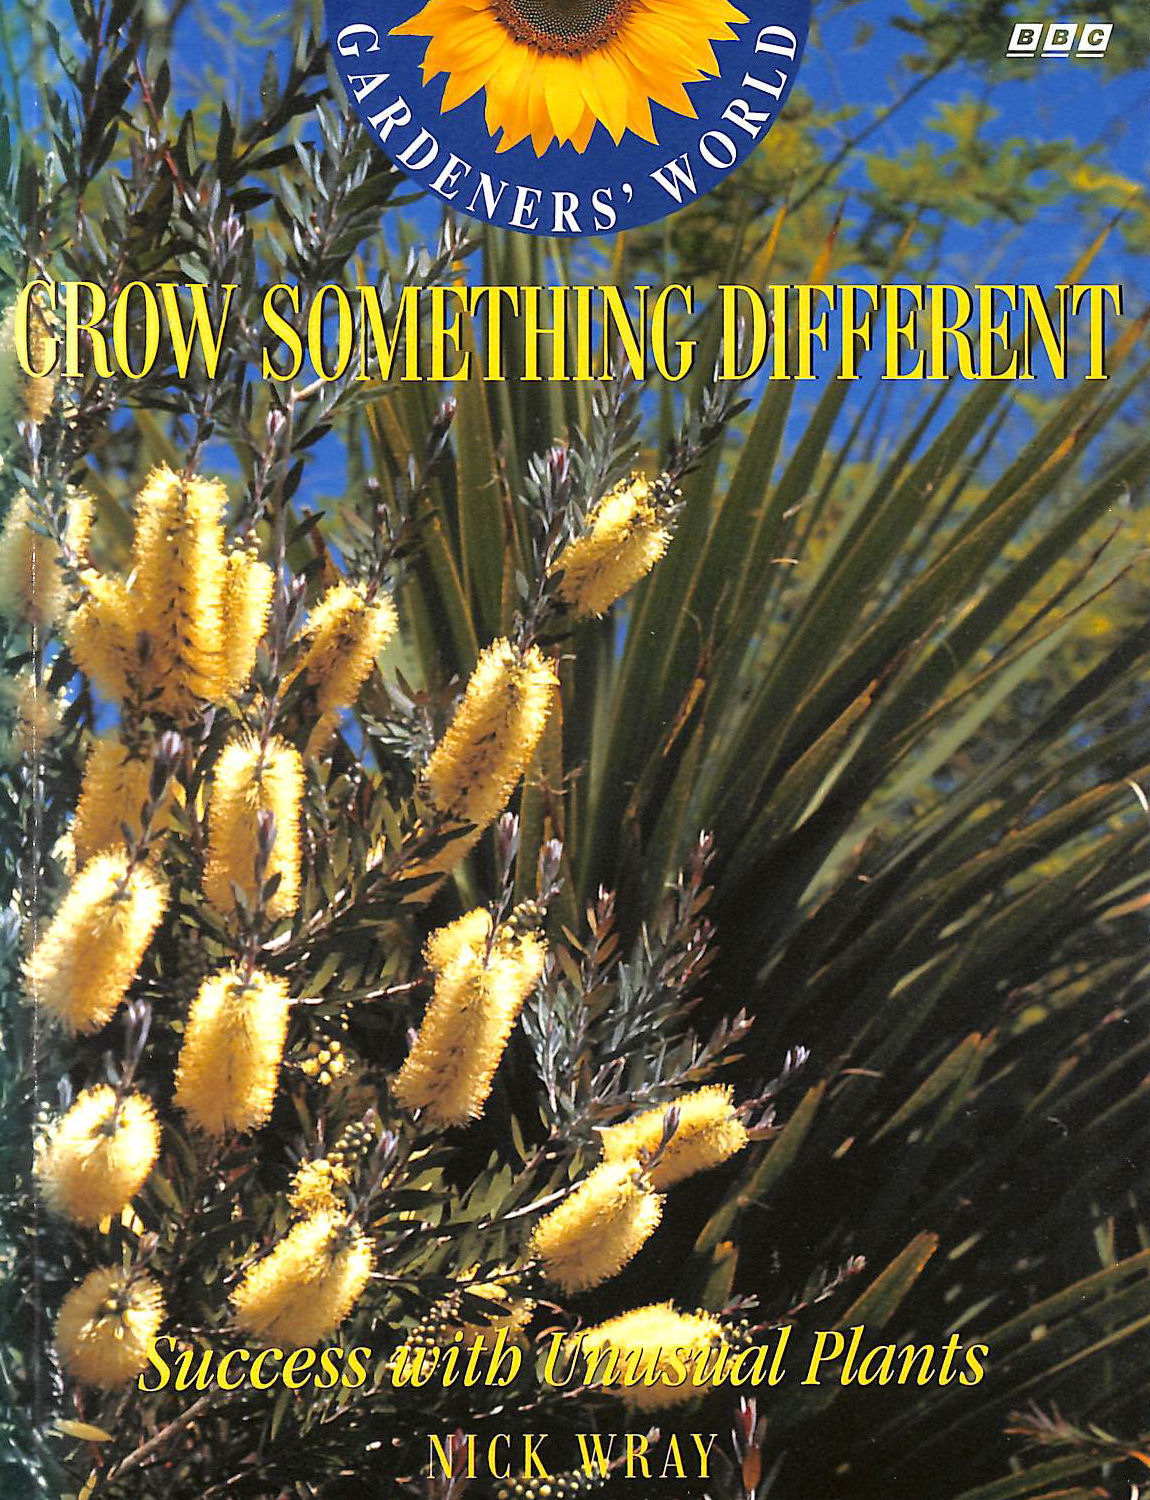 "Image for Gardeners' World"" Grow Something Different: Success With Unusual Plants"